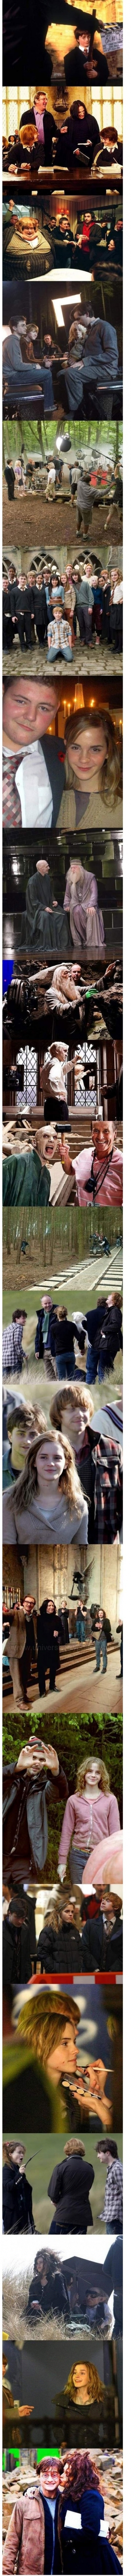 Behind the scenes, harry potter, awesome